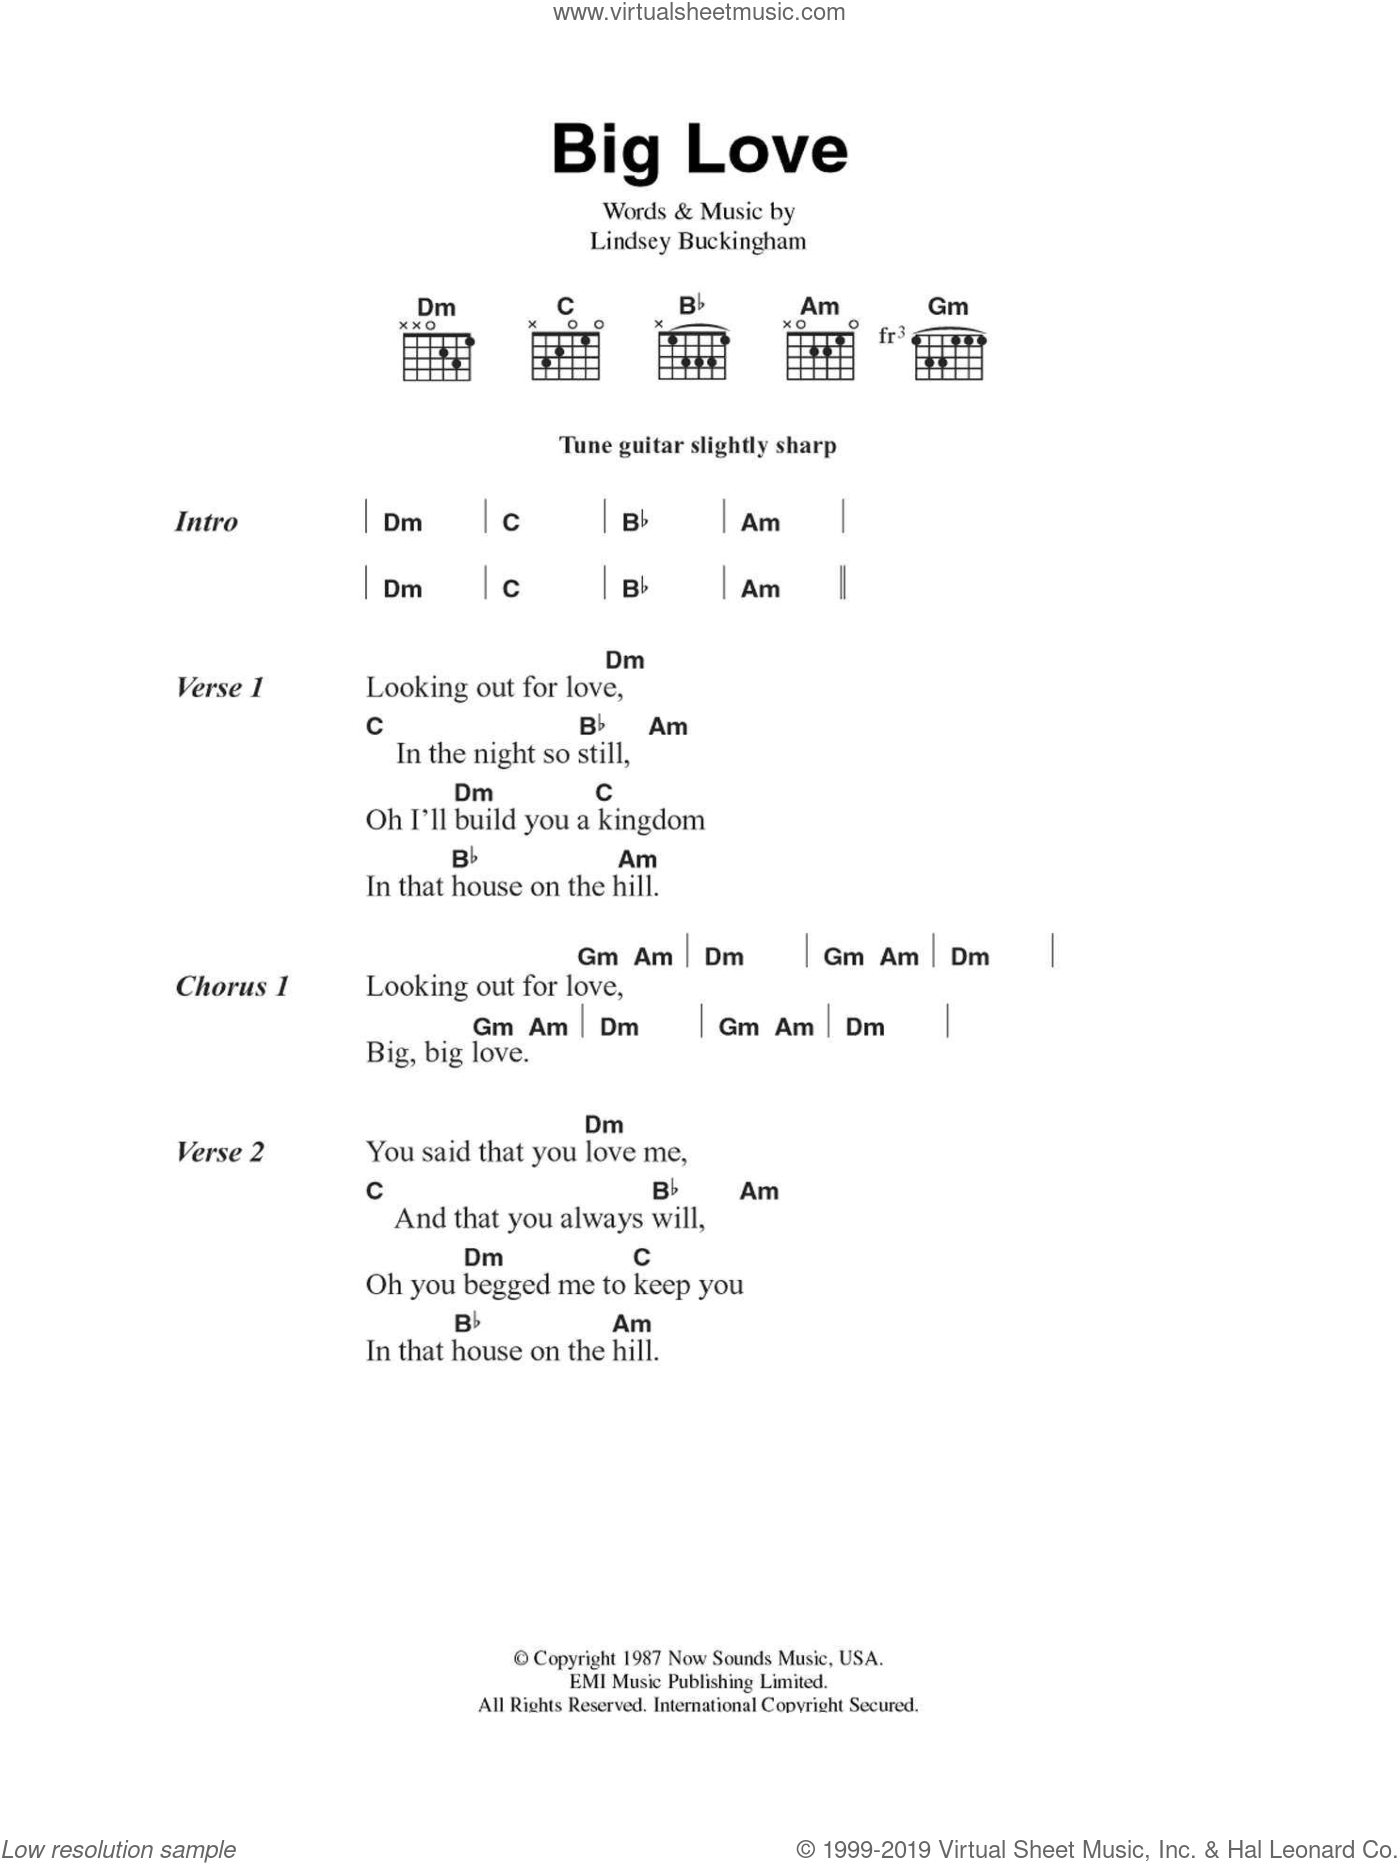 Big Love sheet music for guitar (chords, lyrics, melody) by Lindsey Buckingham